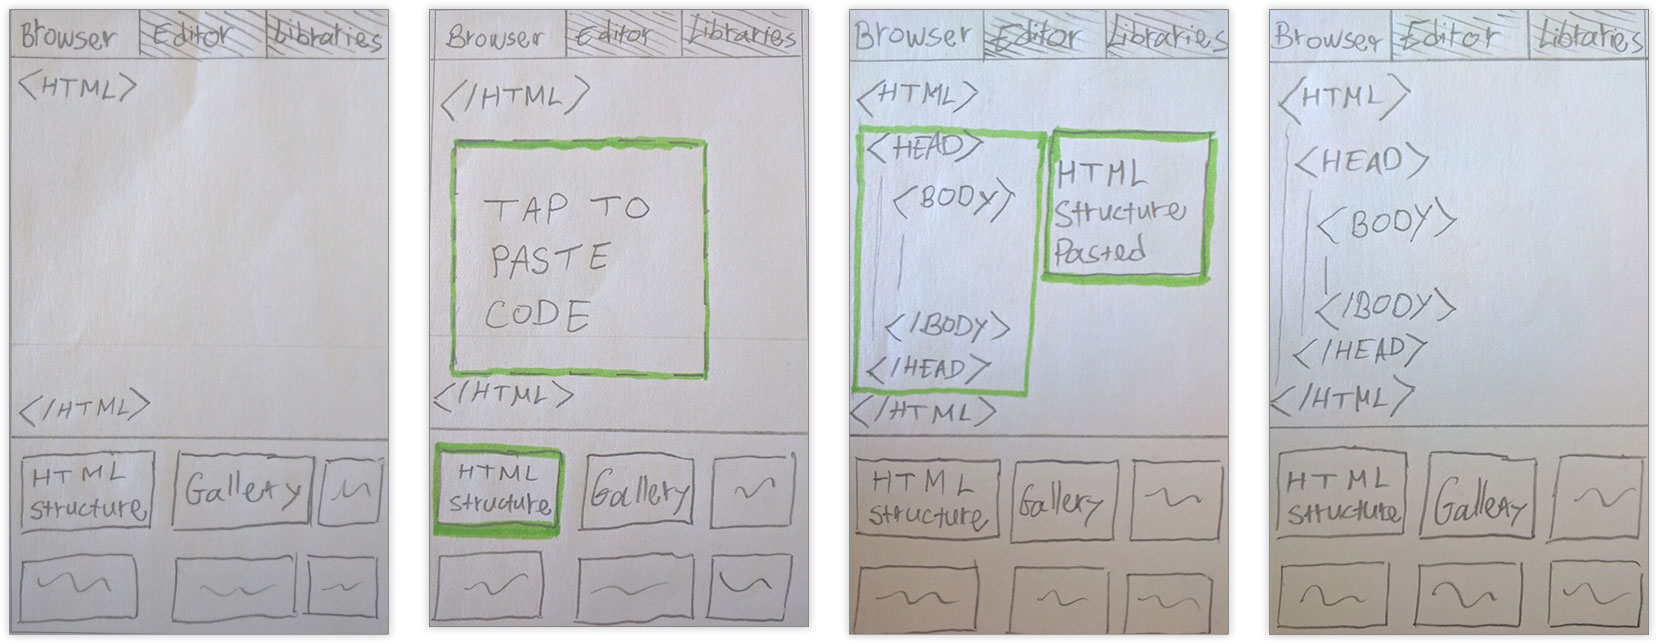 concept 3 low fidelity wireframes